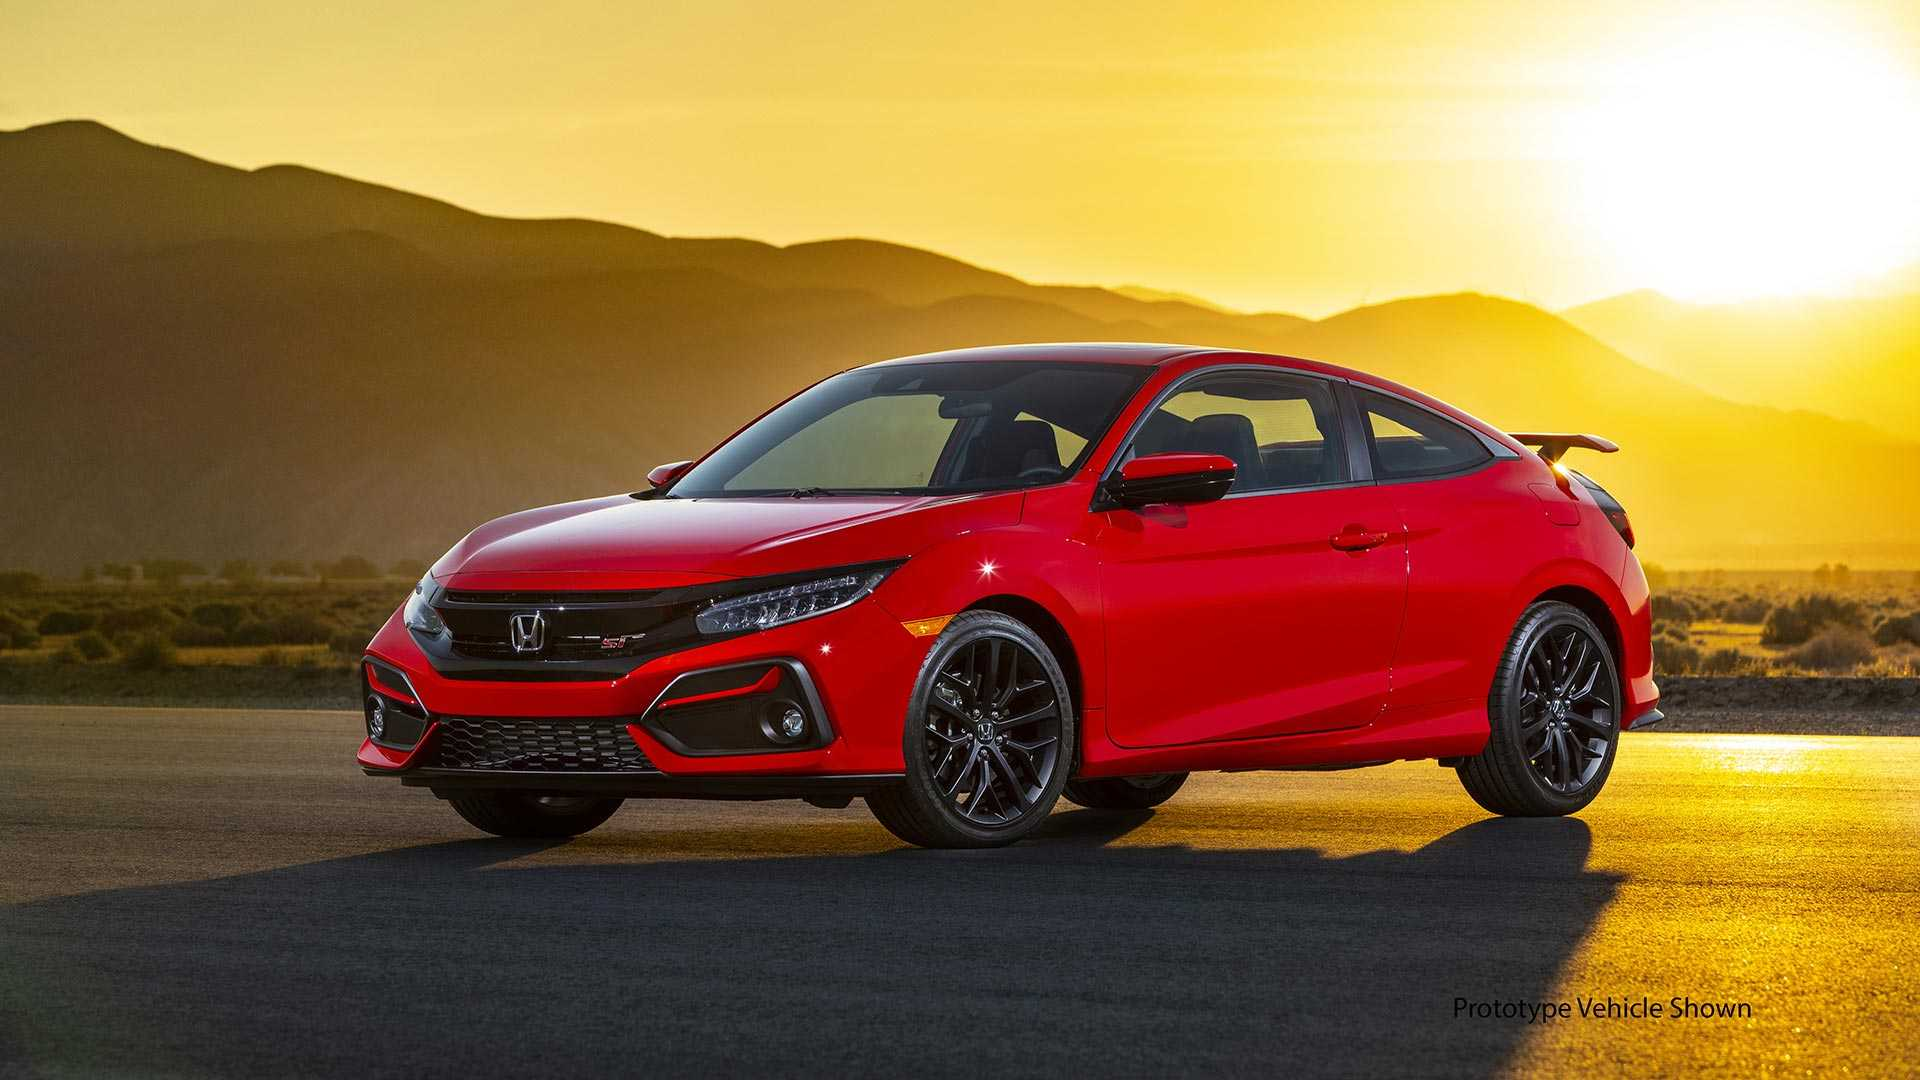 2020 Honda Civic Si Debuts WIth Fresh Face, Quicker ...